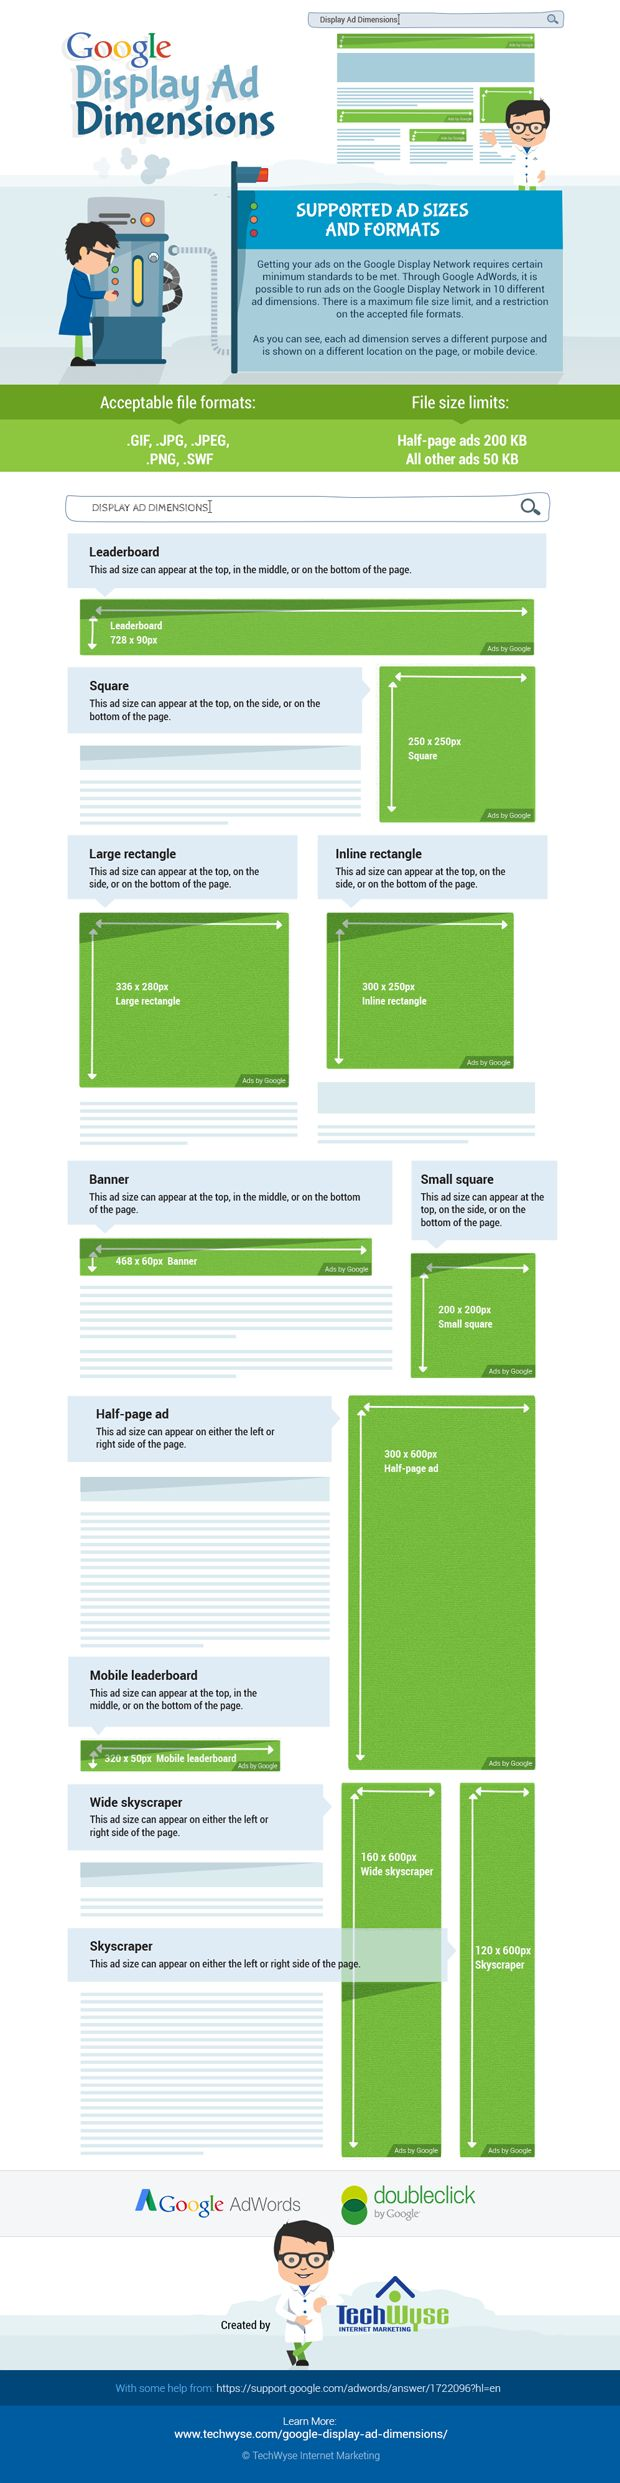 Google Display Ad Dimensions Cheat Sheet [Infographic]